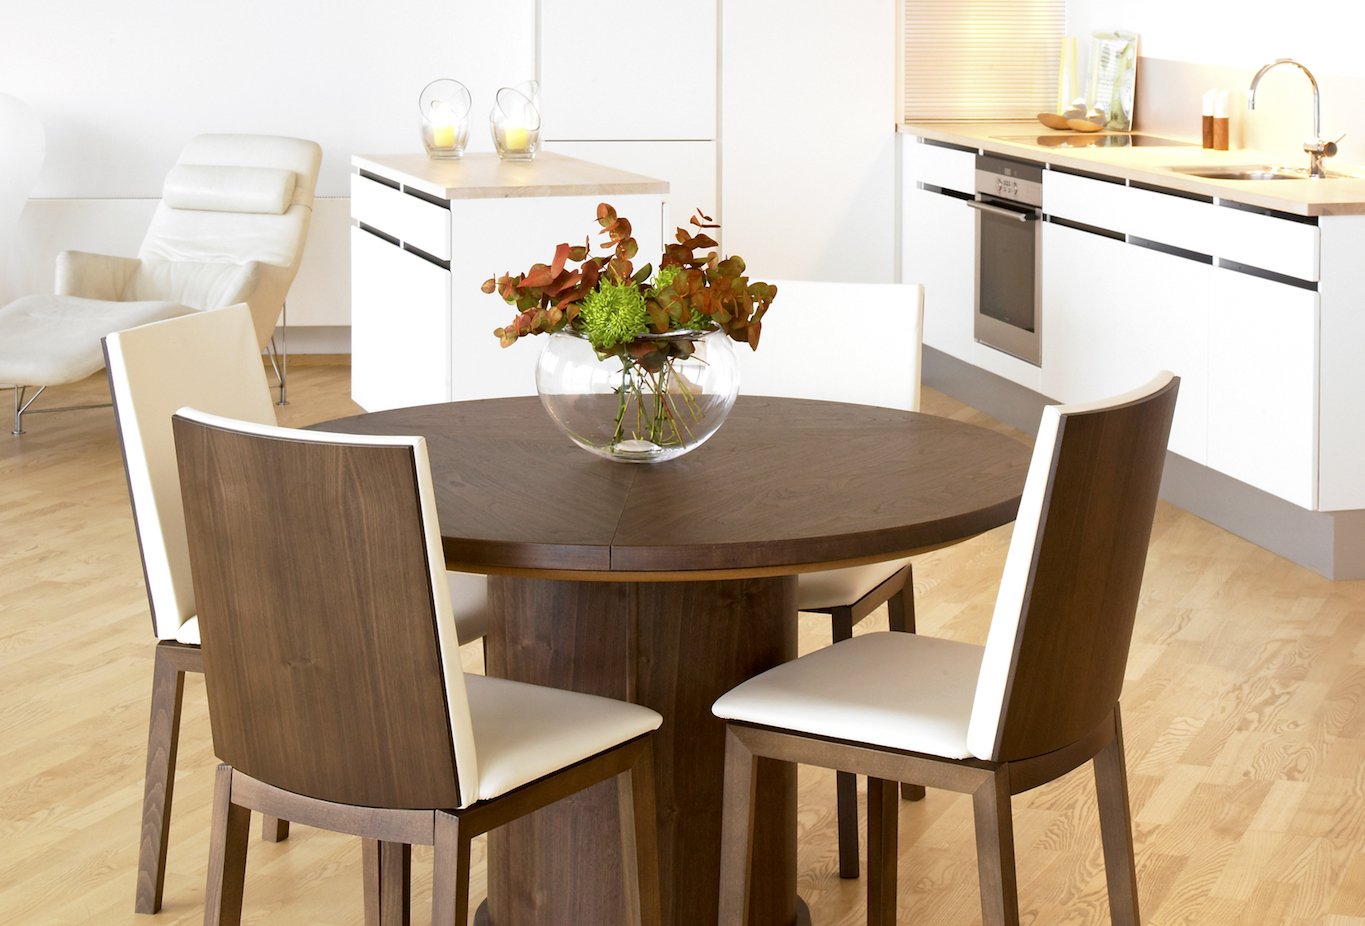 Have You Considered A Modern Round Dining Table